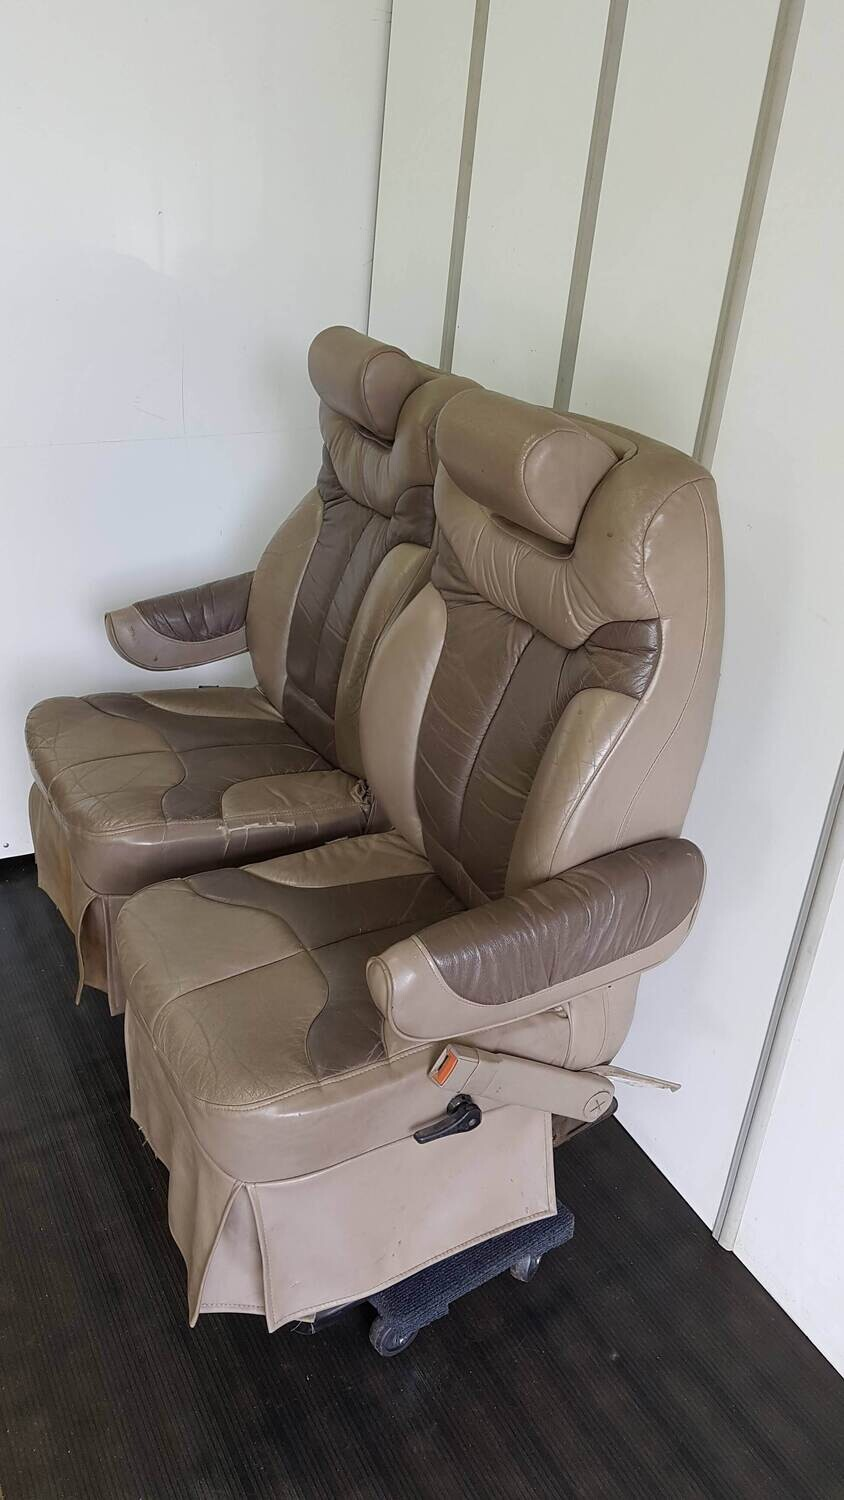 Pair of Swivel Seats for RVs